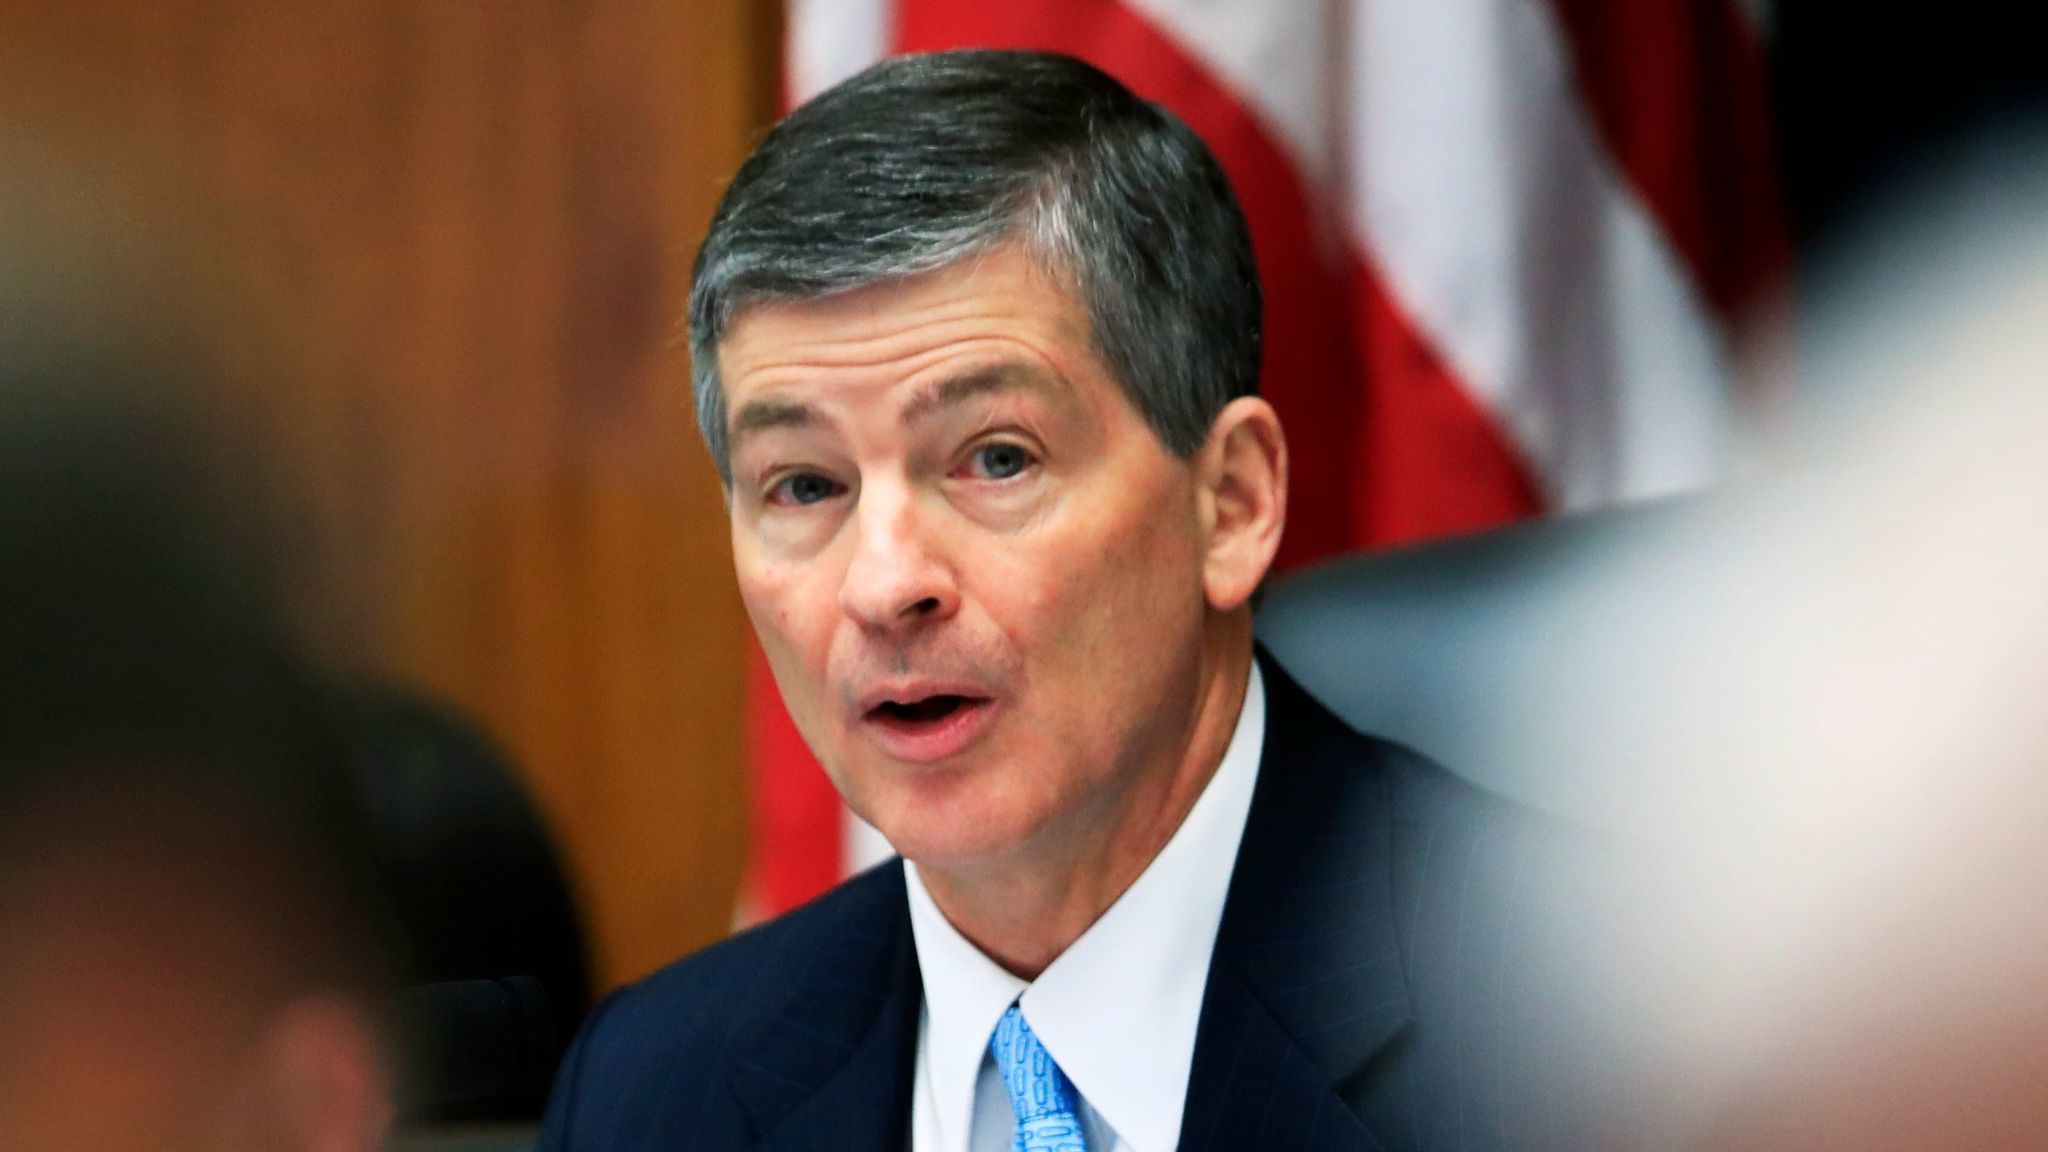 Rep. Jeb Hensarling (R-Texas), chairman of the House Financial Services Committee, speaks during a May hearing on overhauling financial regulations.